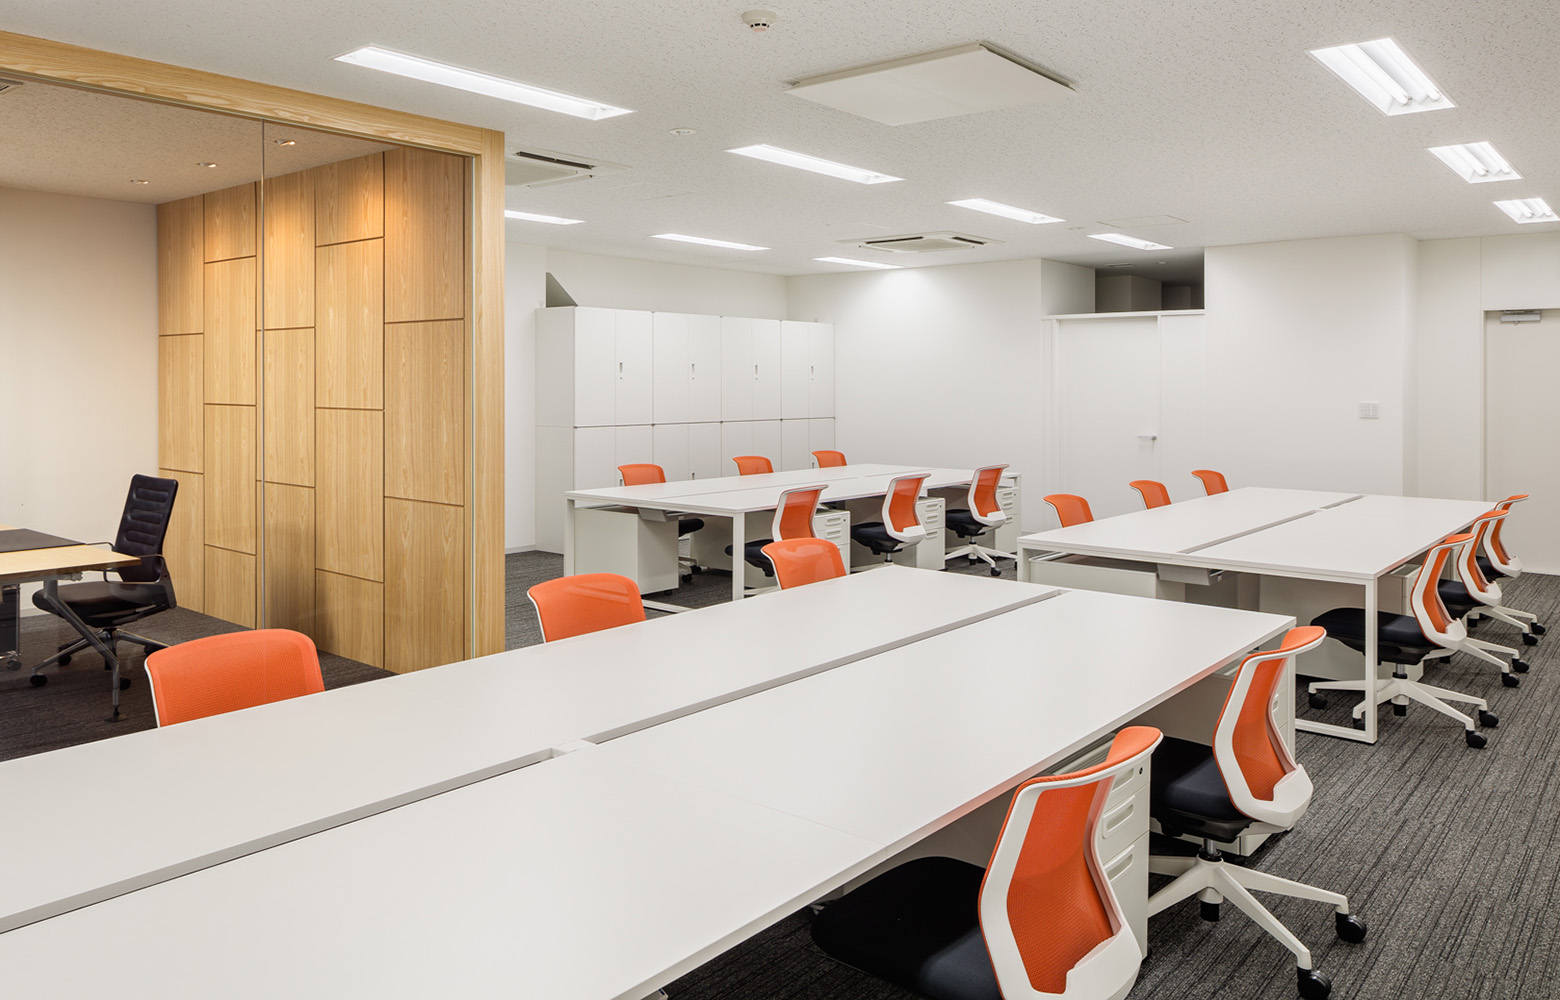 Company Private Work Space デザイン・レイアウト事例